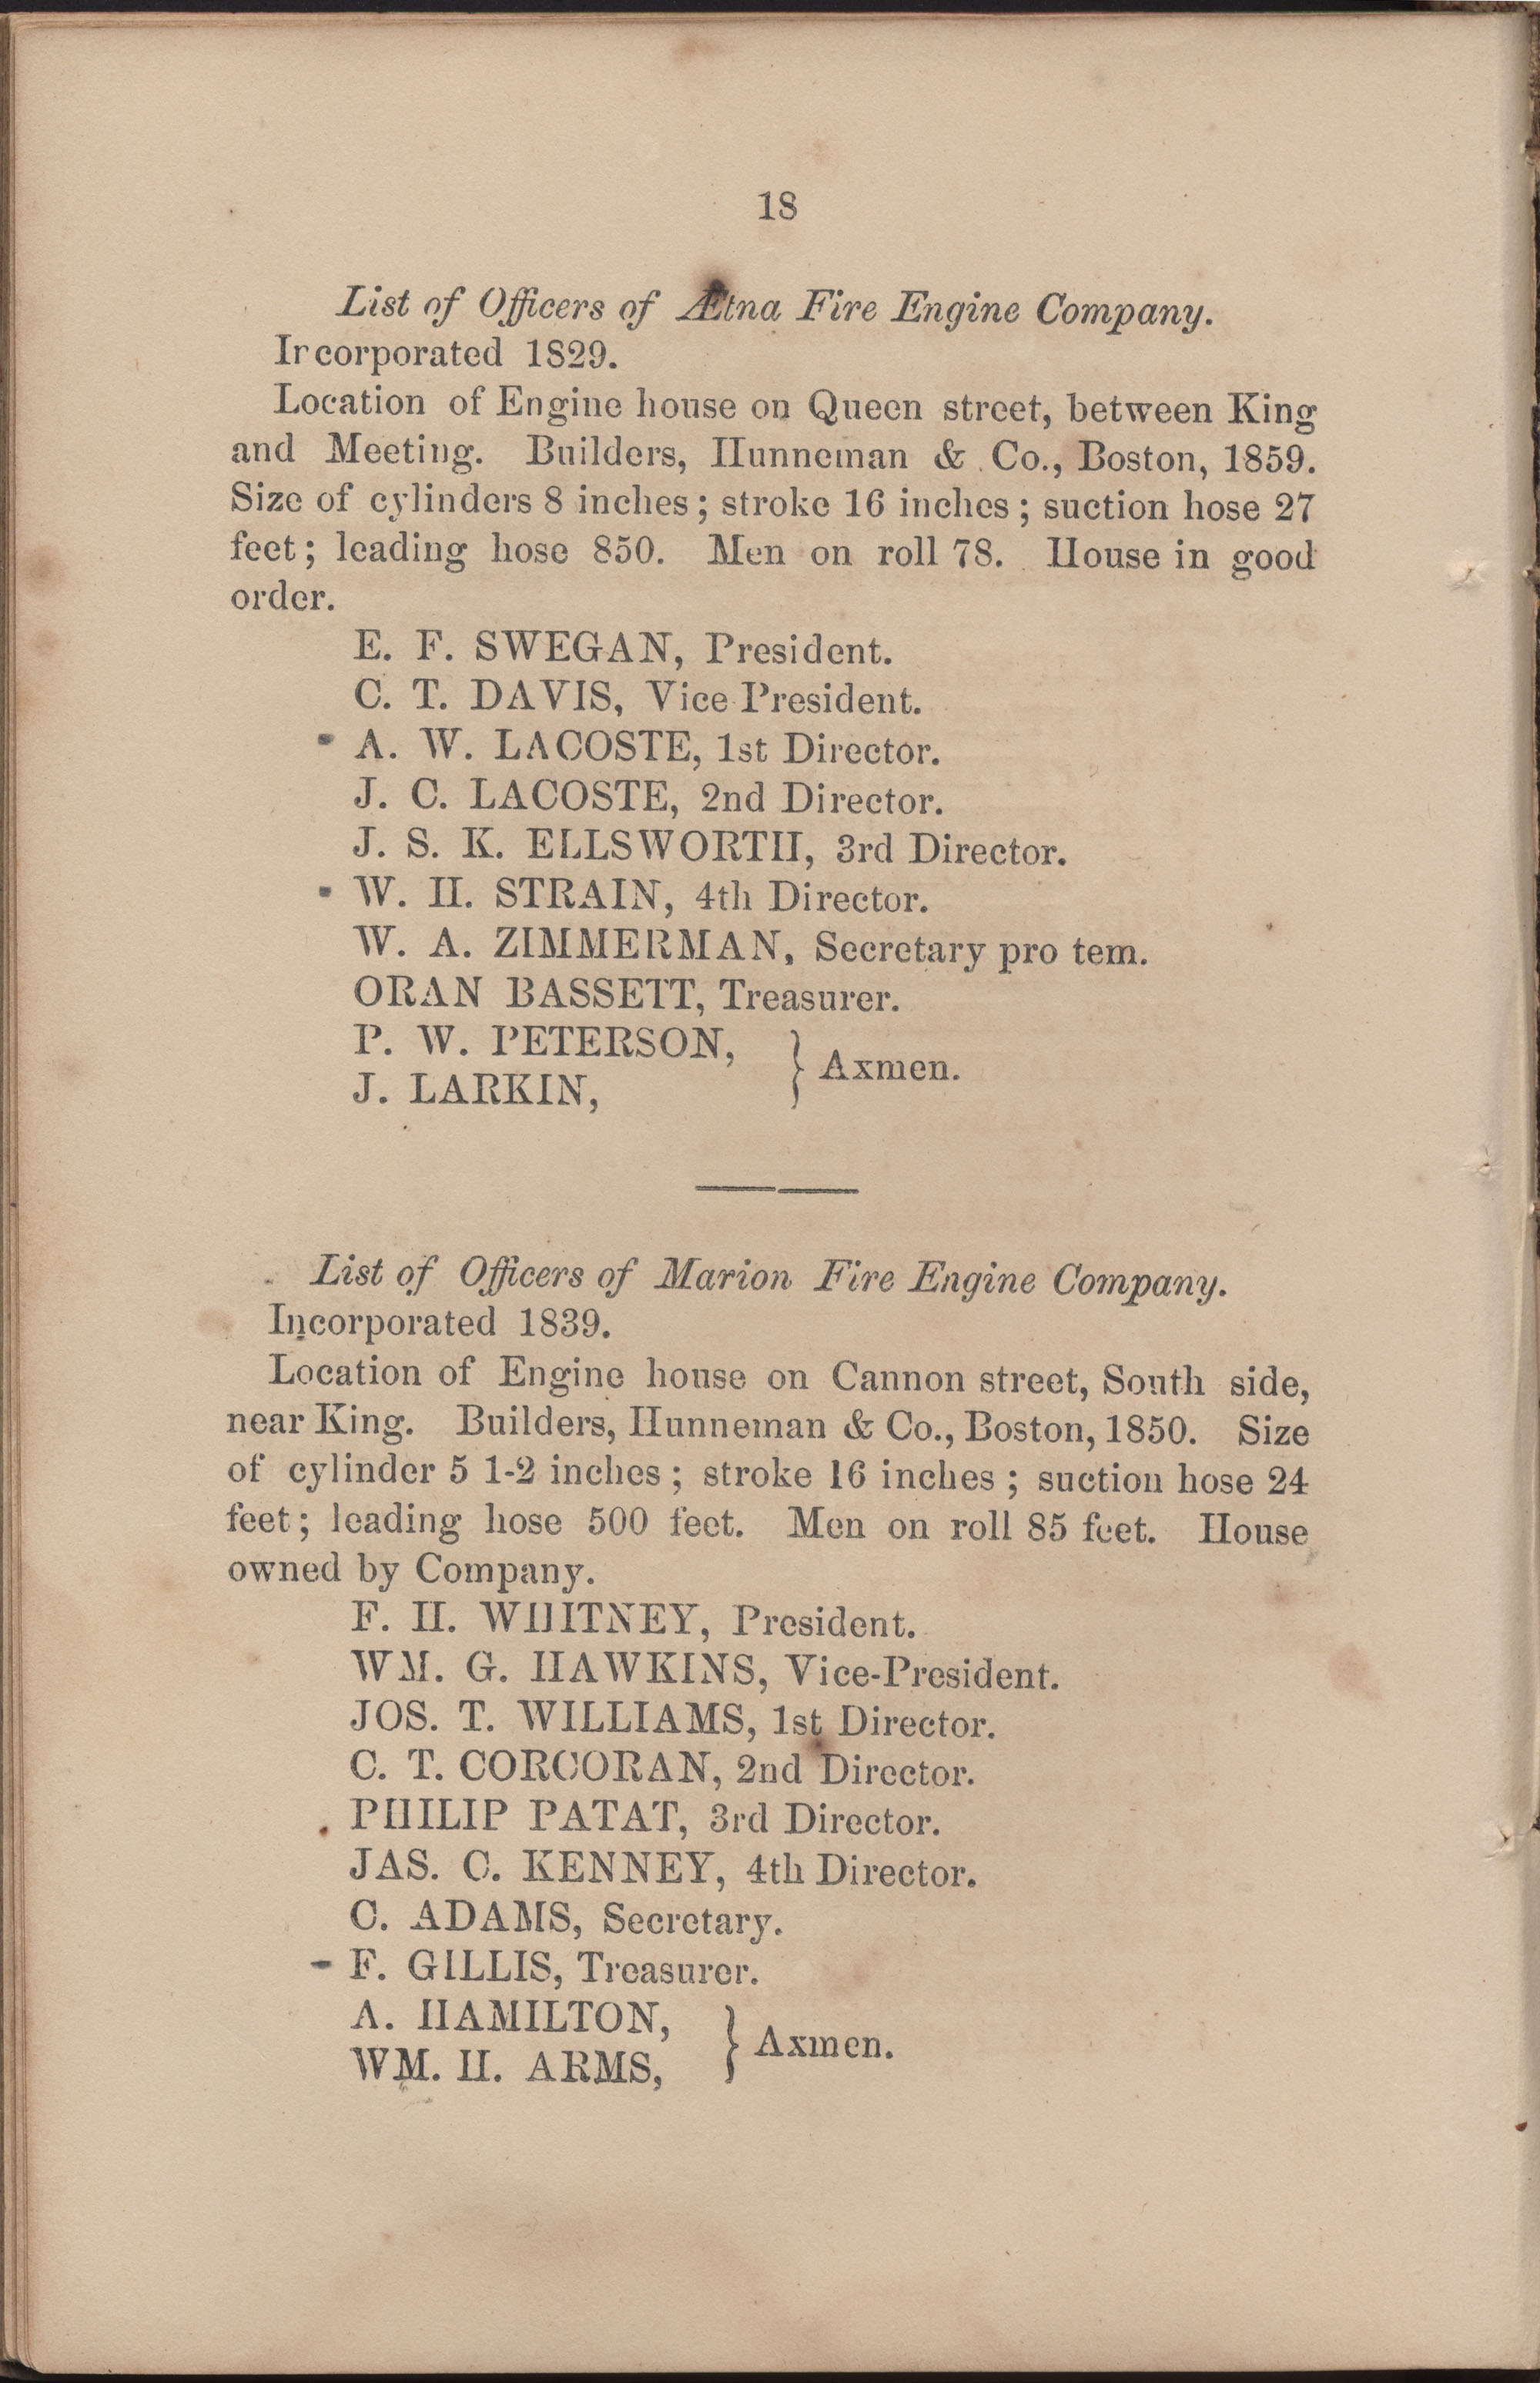 Annual Report of the Chief of the Fire Department of the City of Charleston, page 79